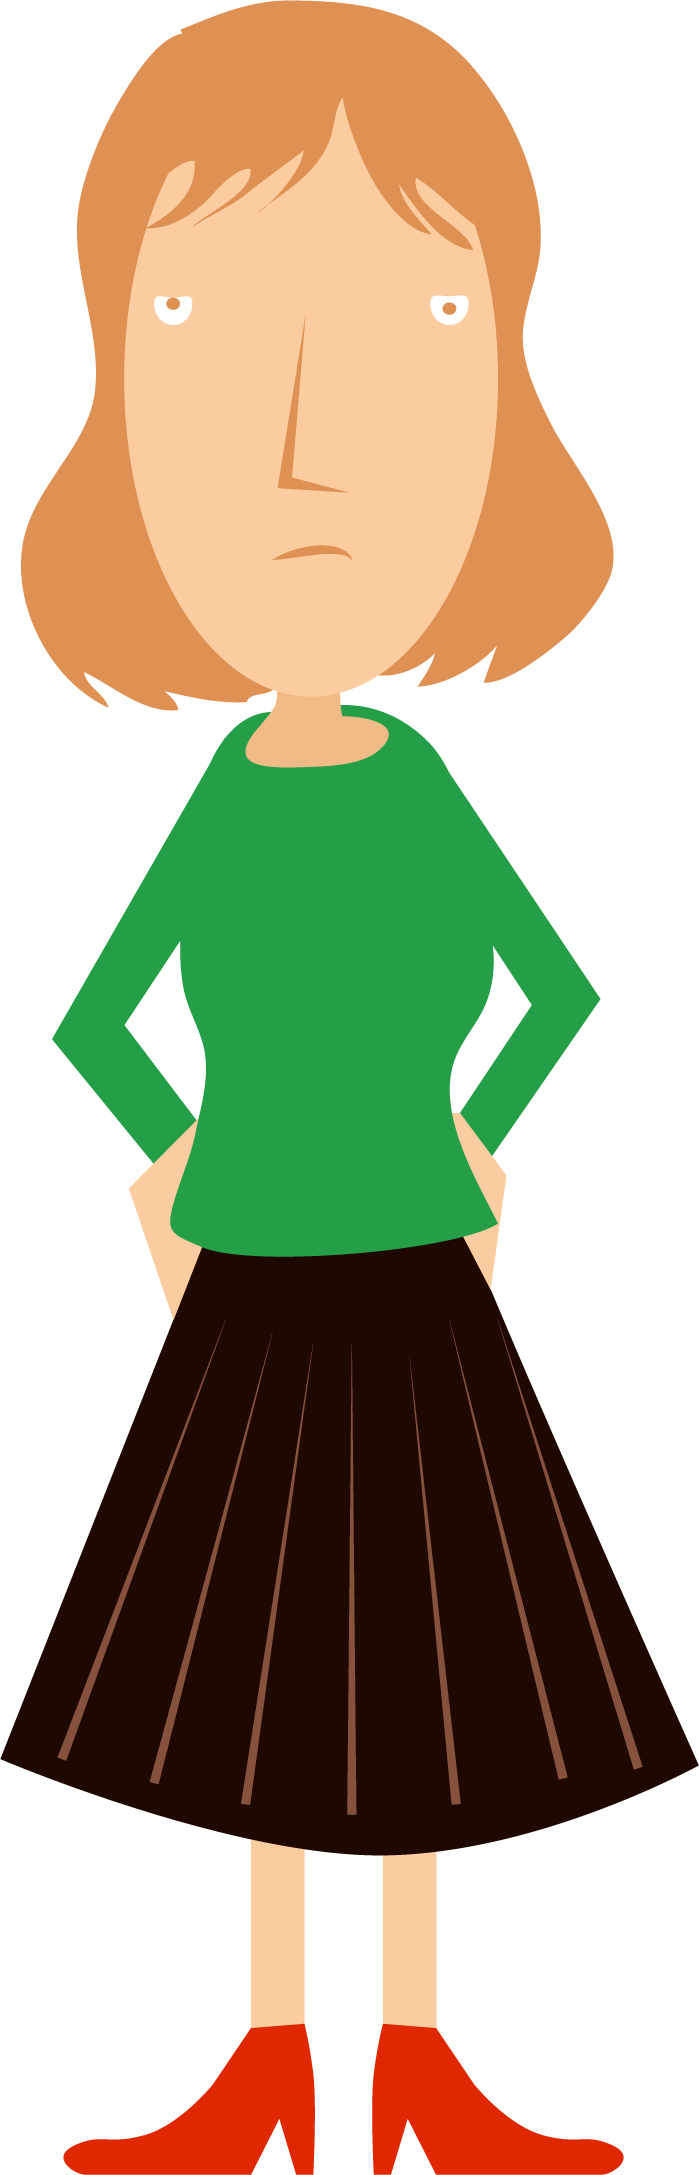 Young clipart aunt. Character gallery mysterycaper books